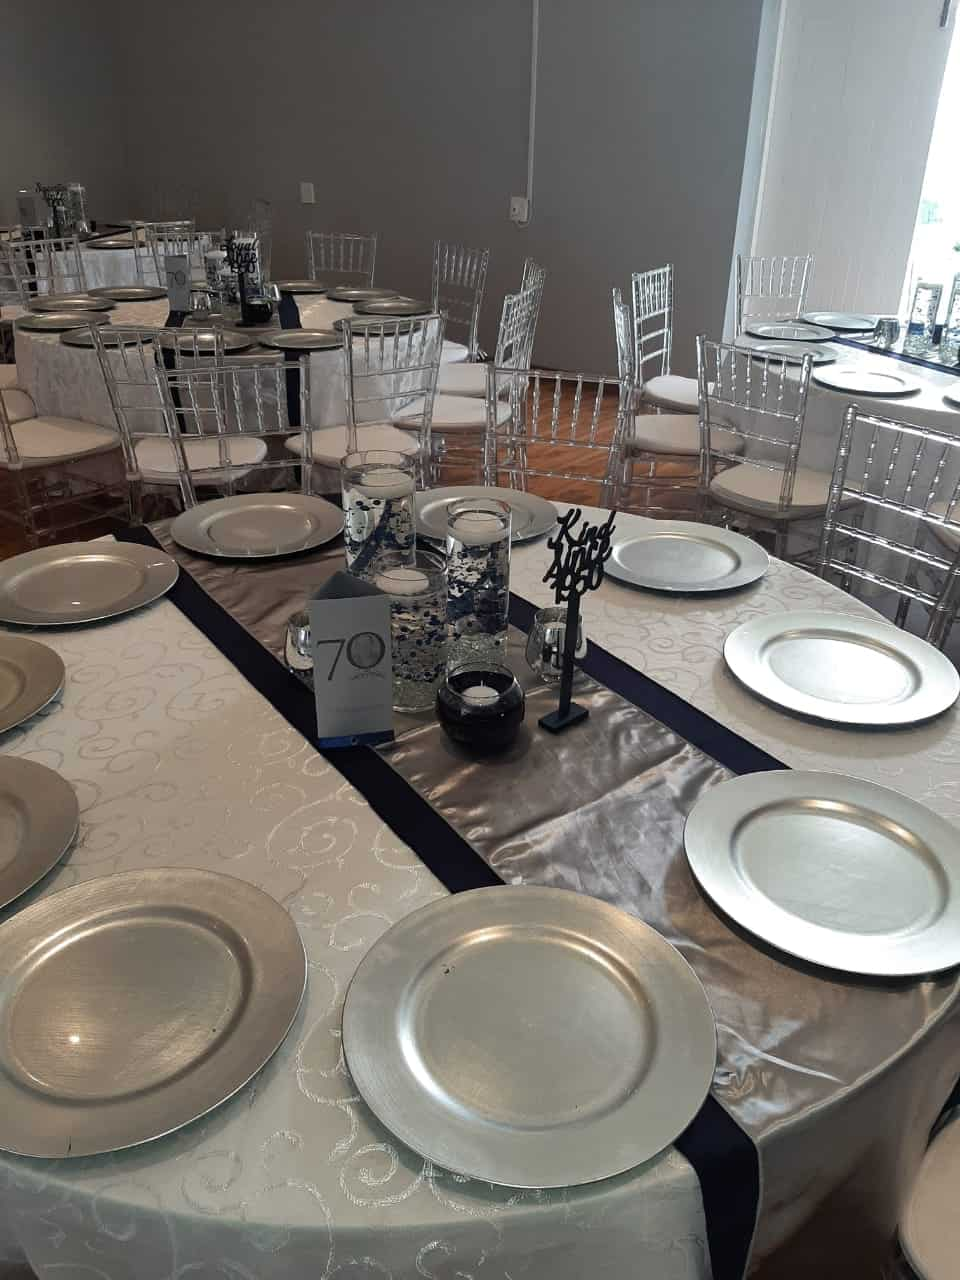 Silver Plates on a silver overlay on a round table